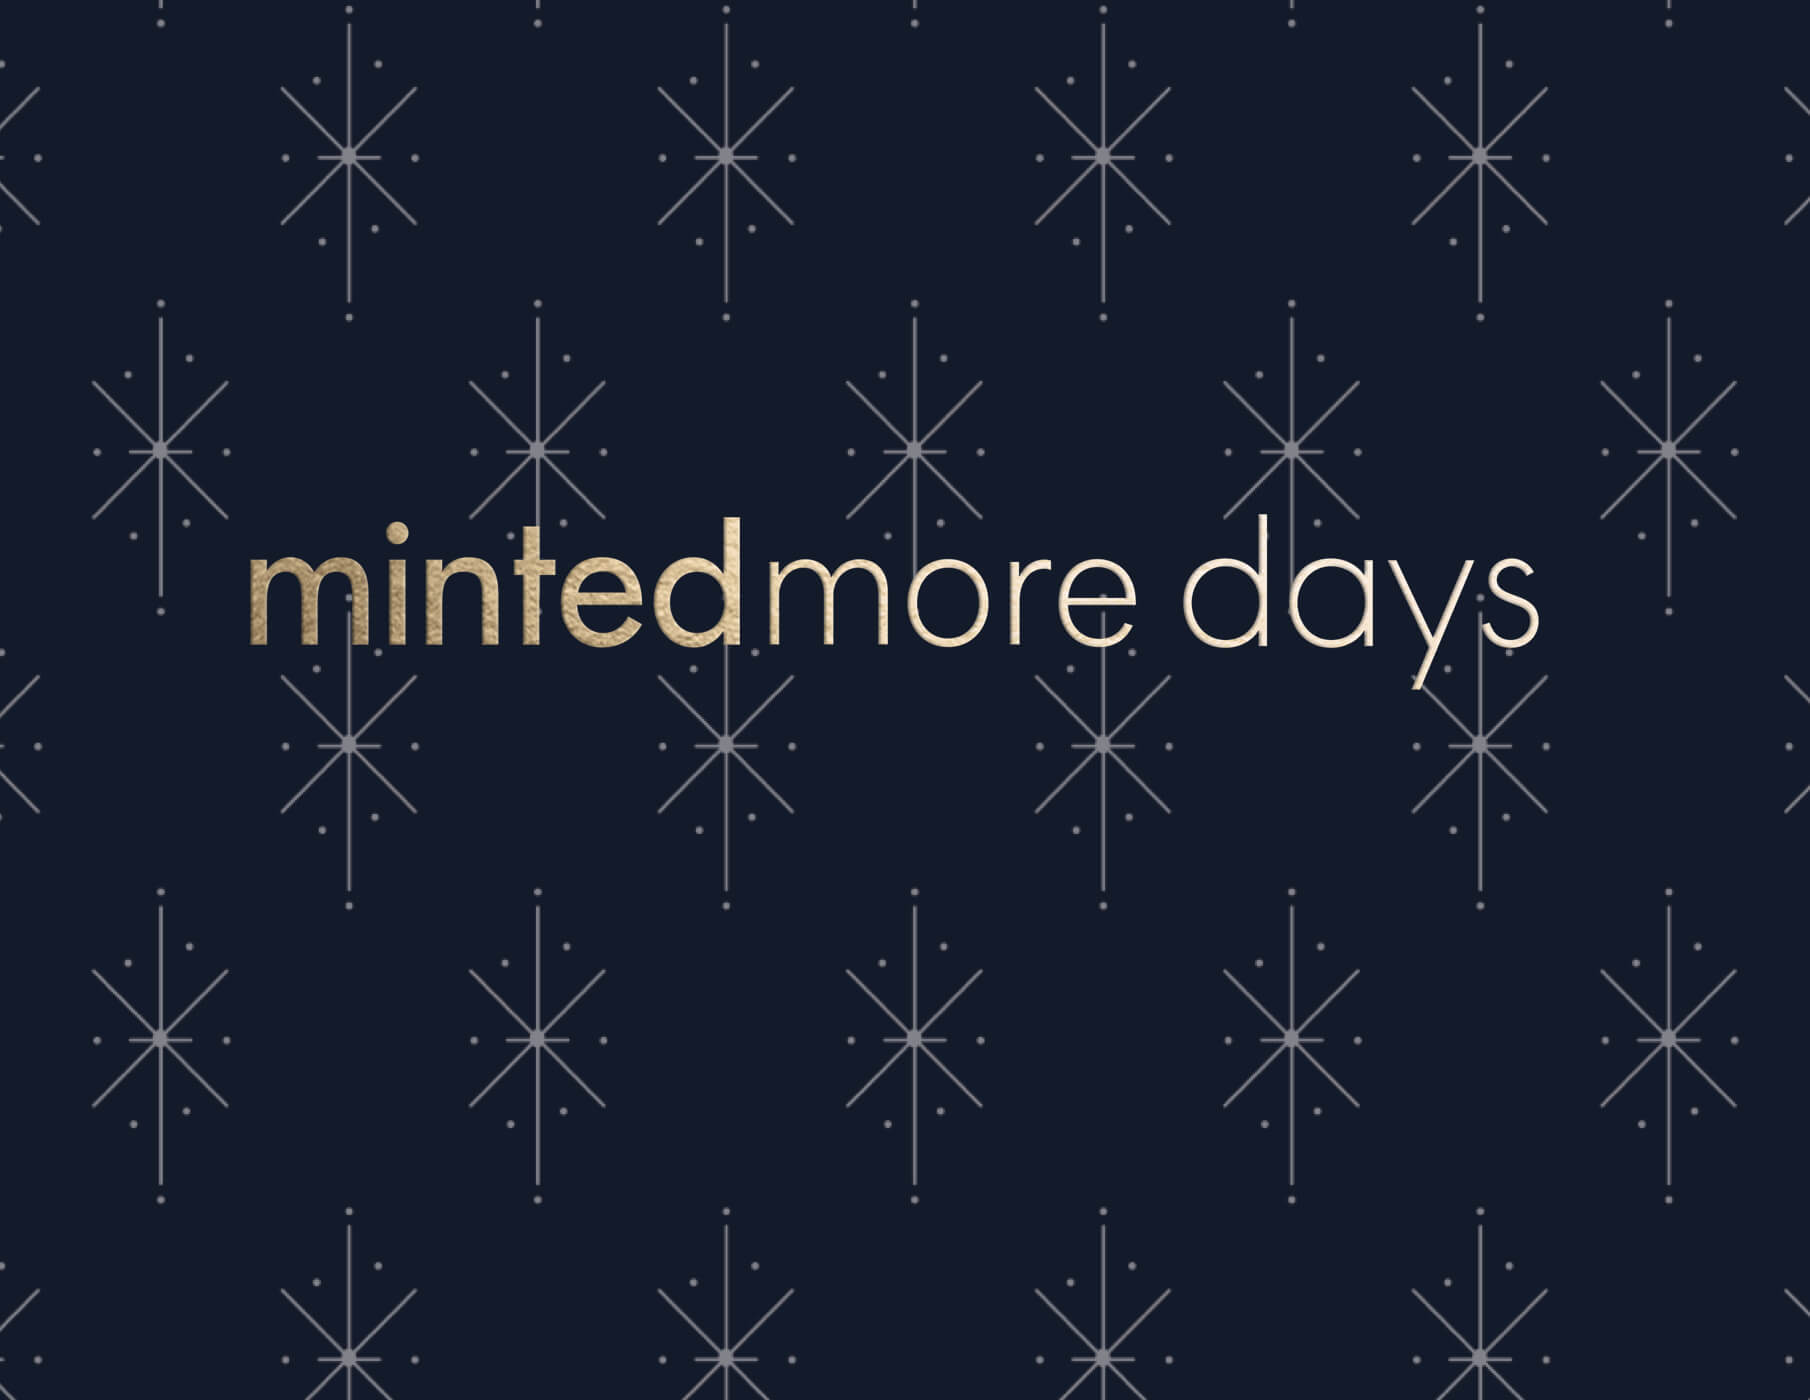 mintedmore days